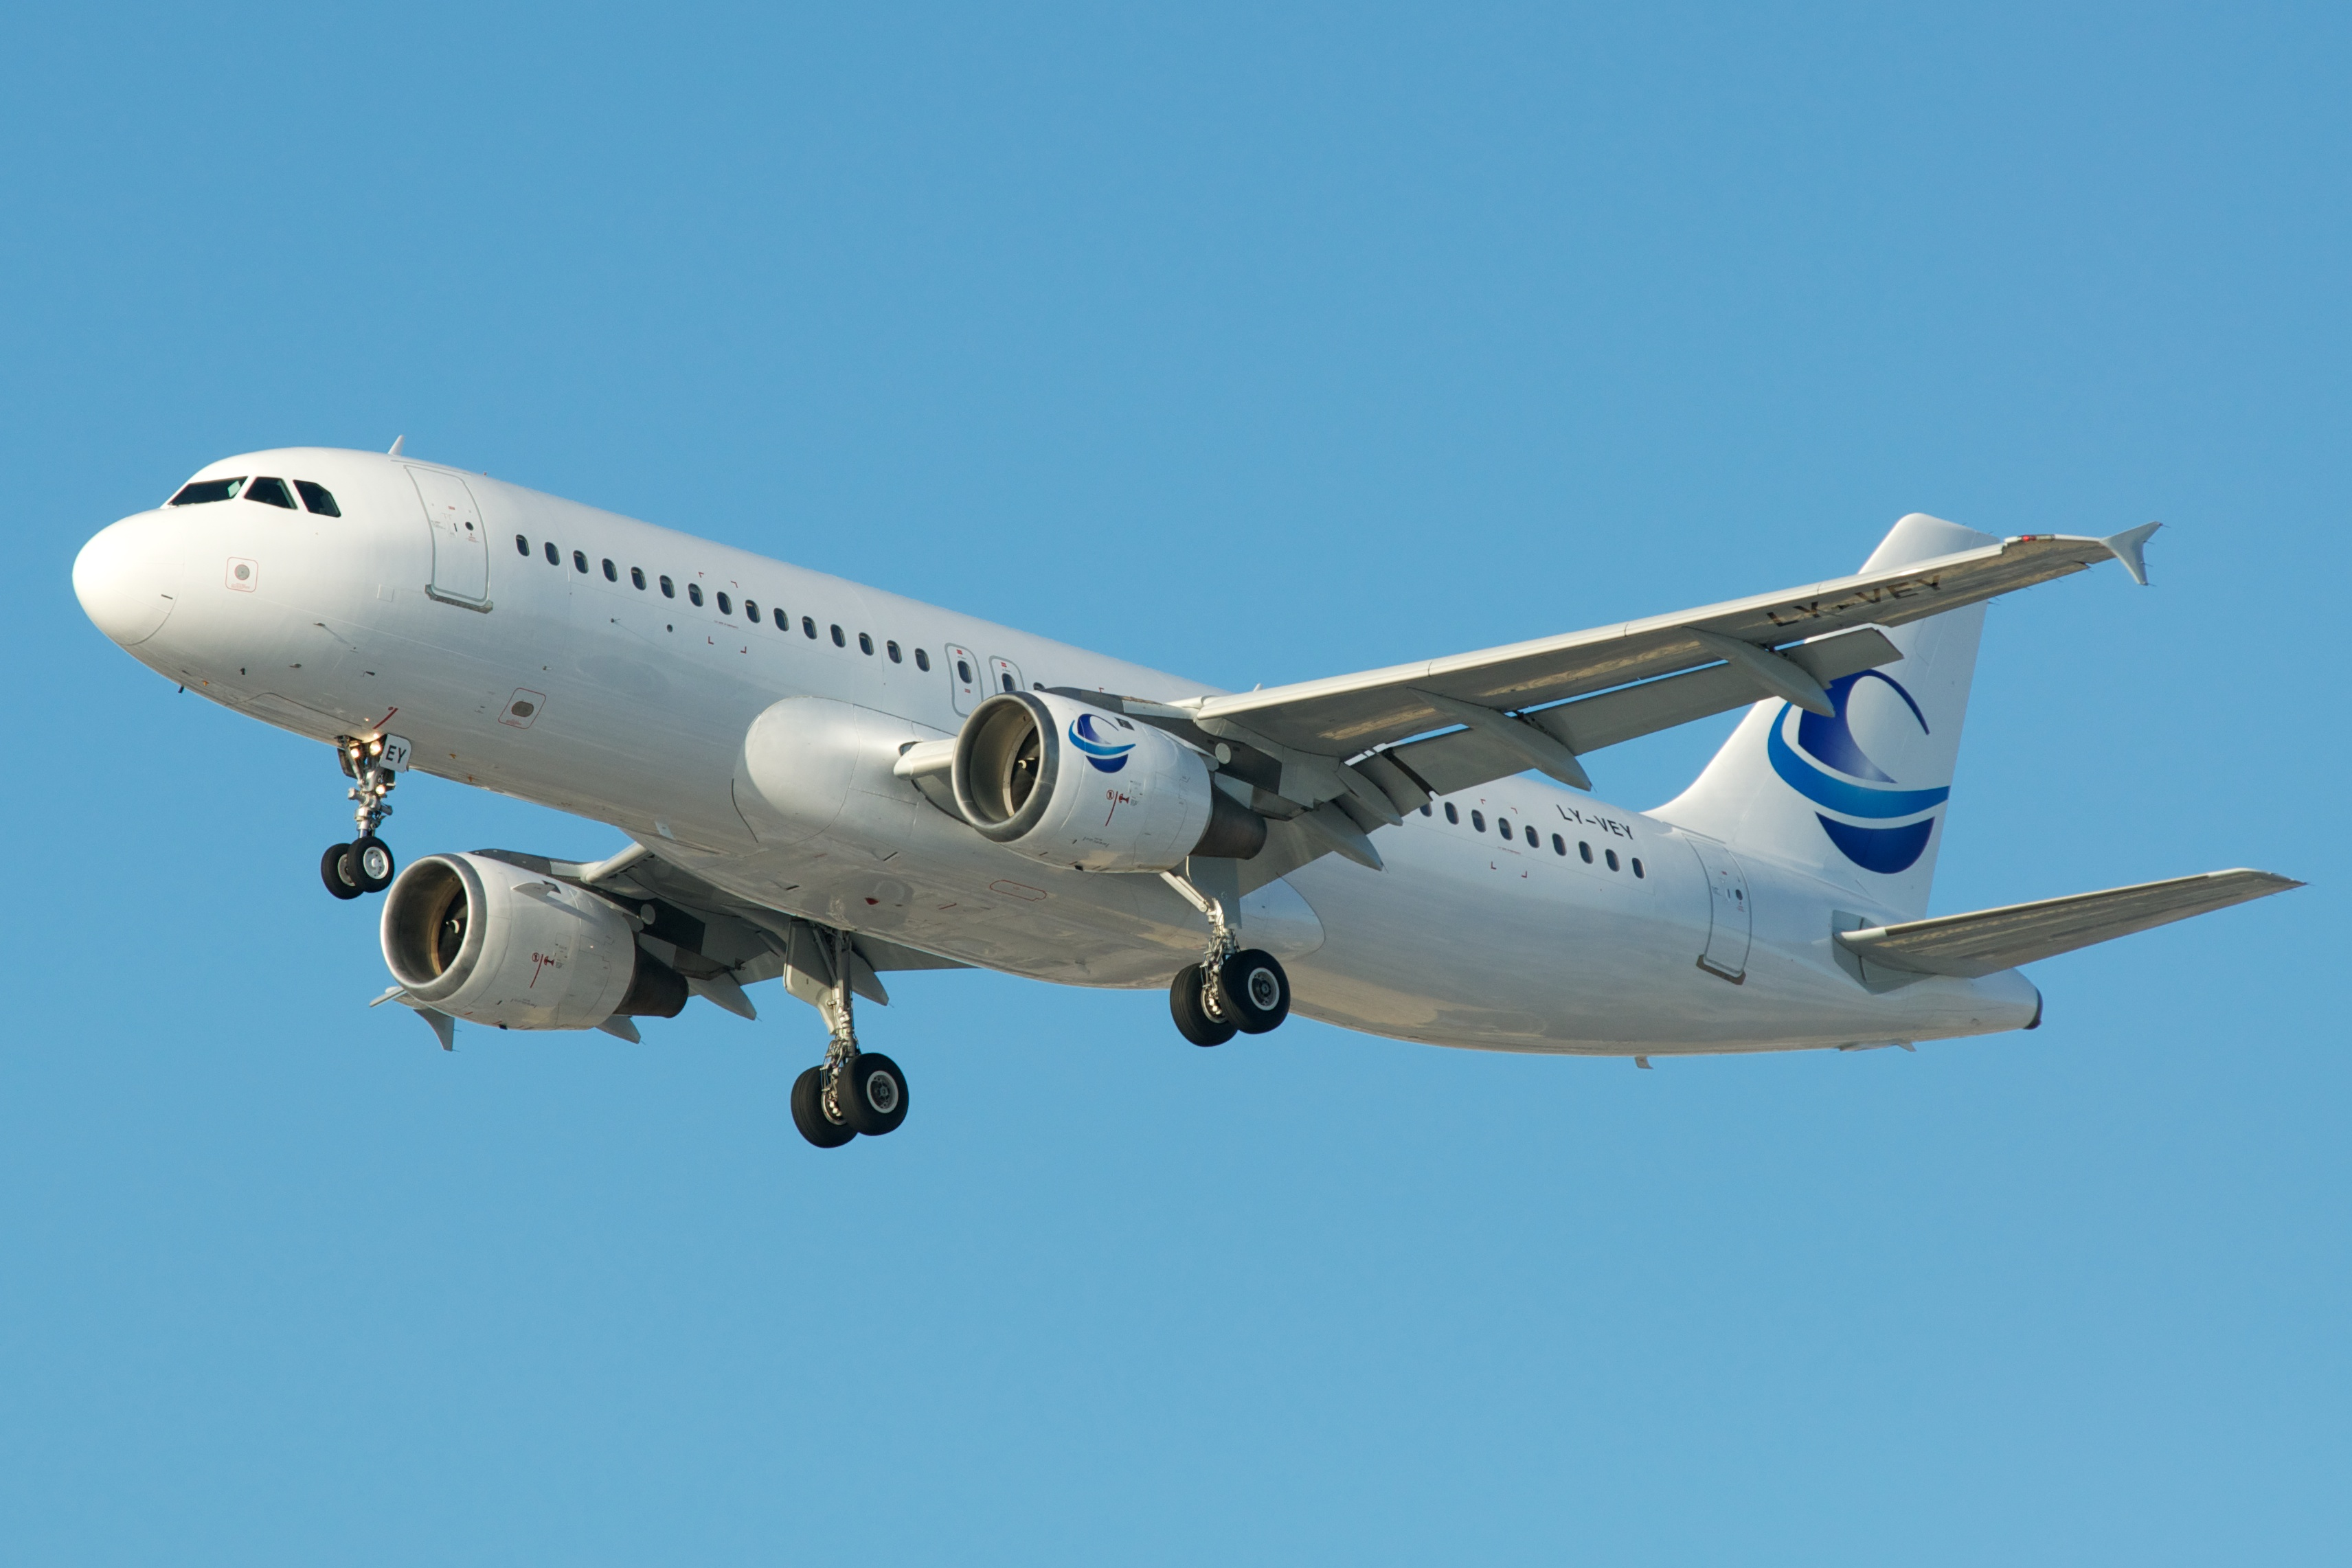 File:Avion Express Airbus A320 LY-VEY (6705403435) (2).jpg.